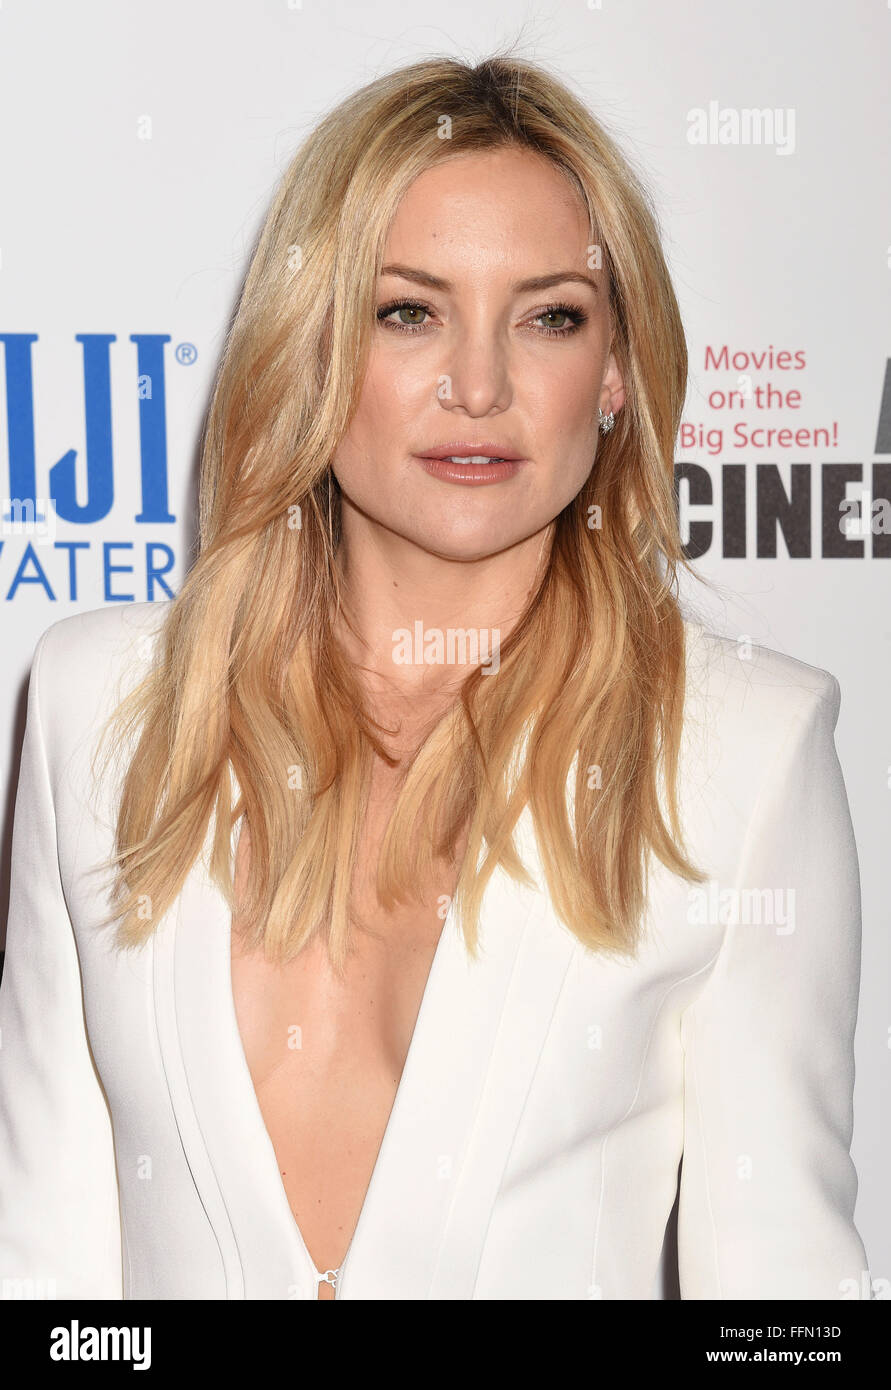 Kate Hudson, 30.10.2015 Stockbild